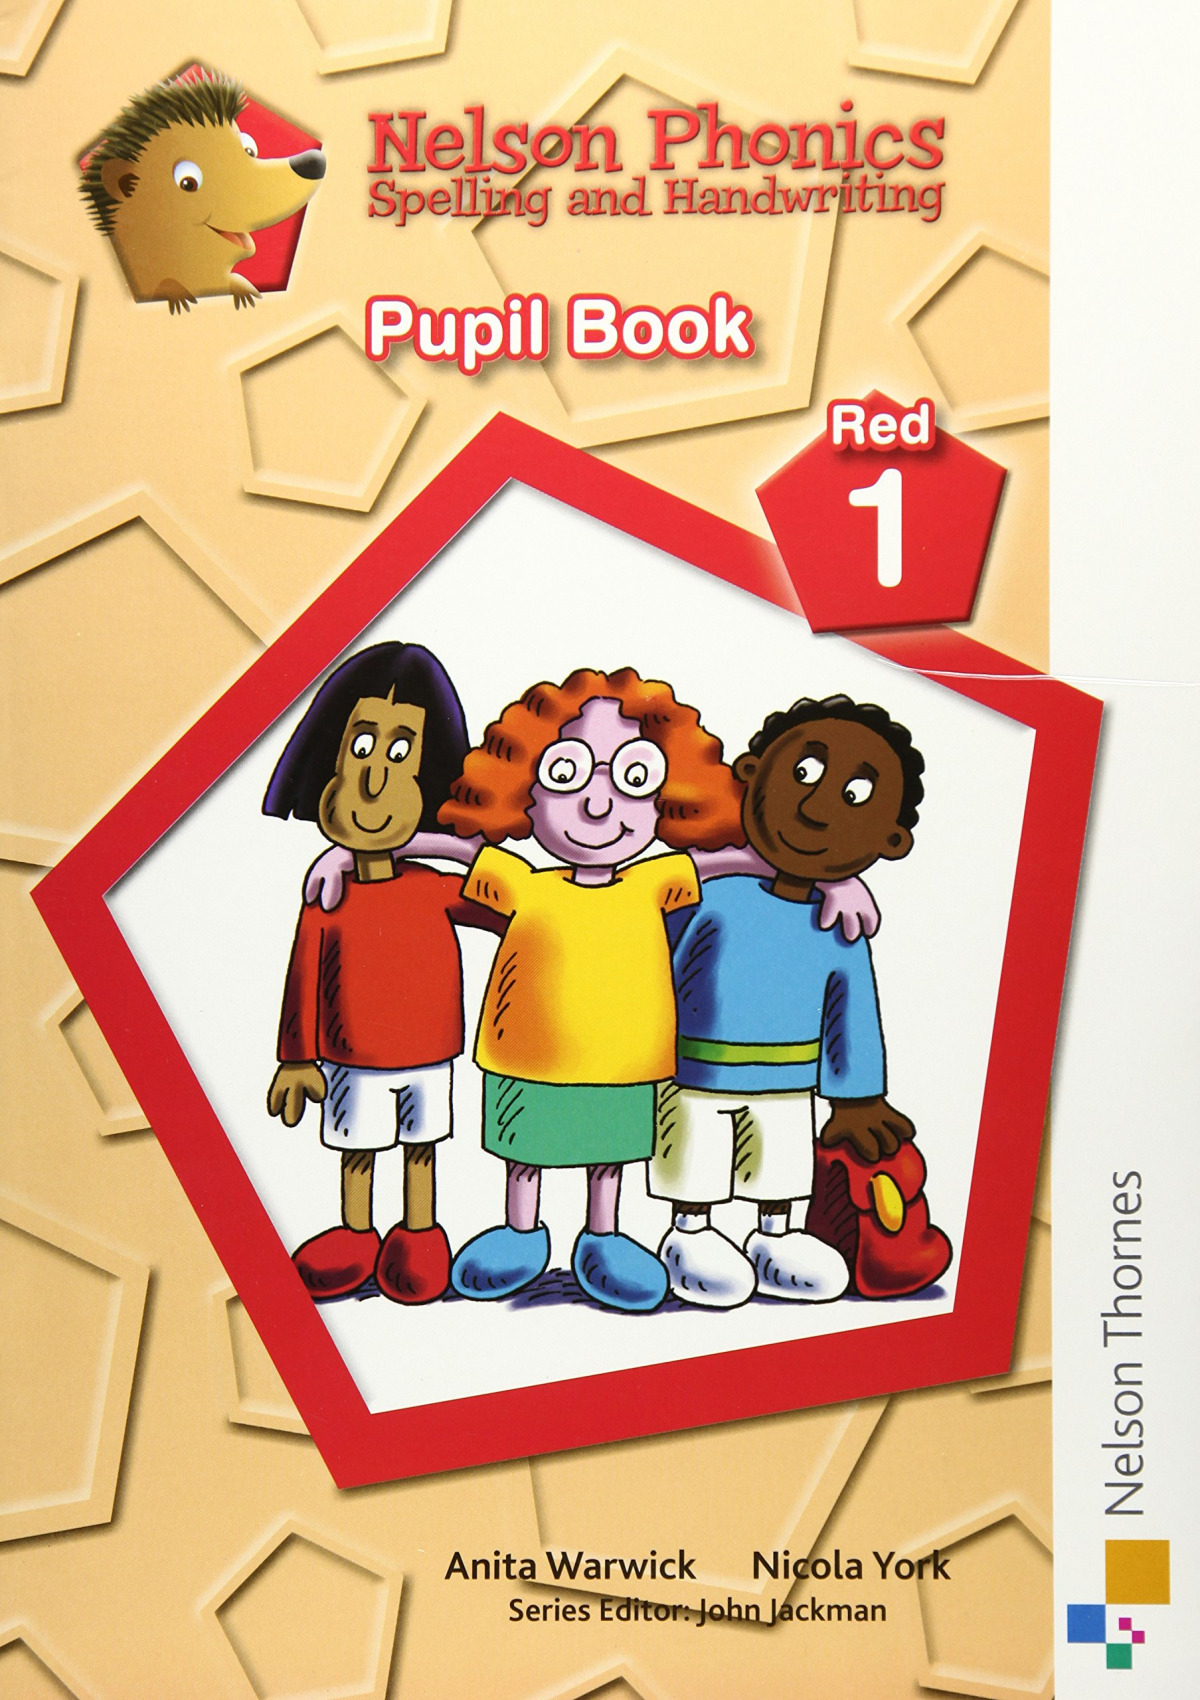 Nelson Phonics Spelling and Handwriting Student's Book Red 1